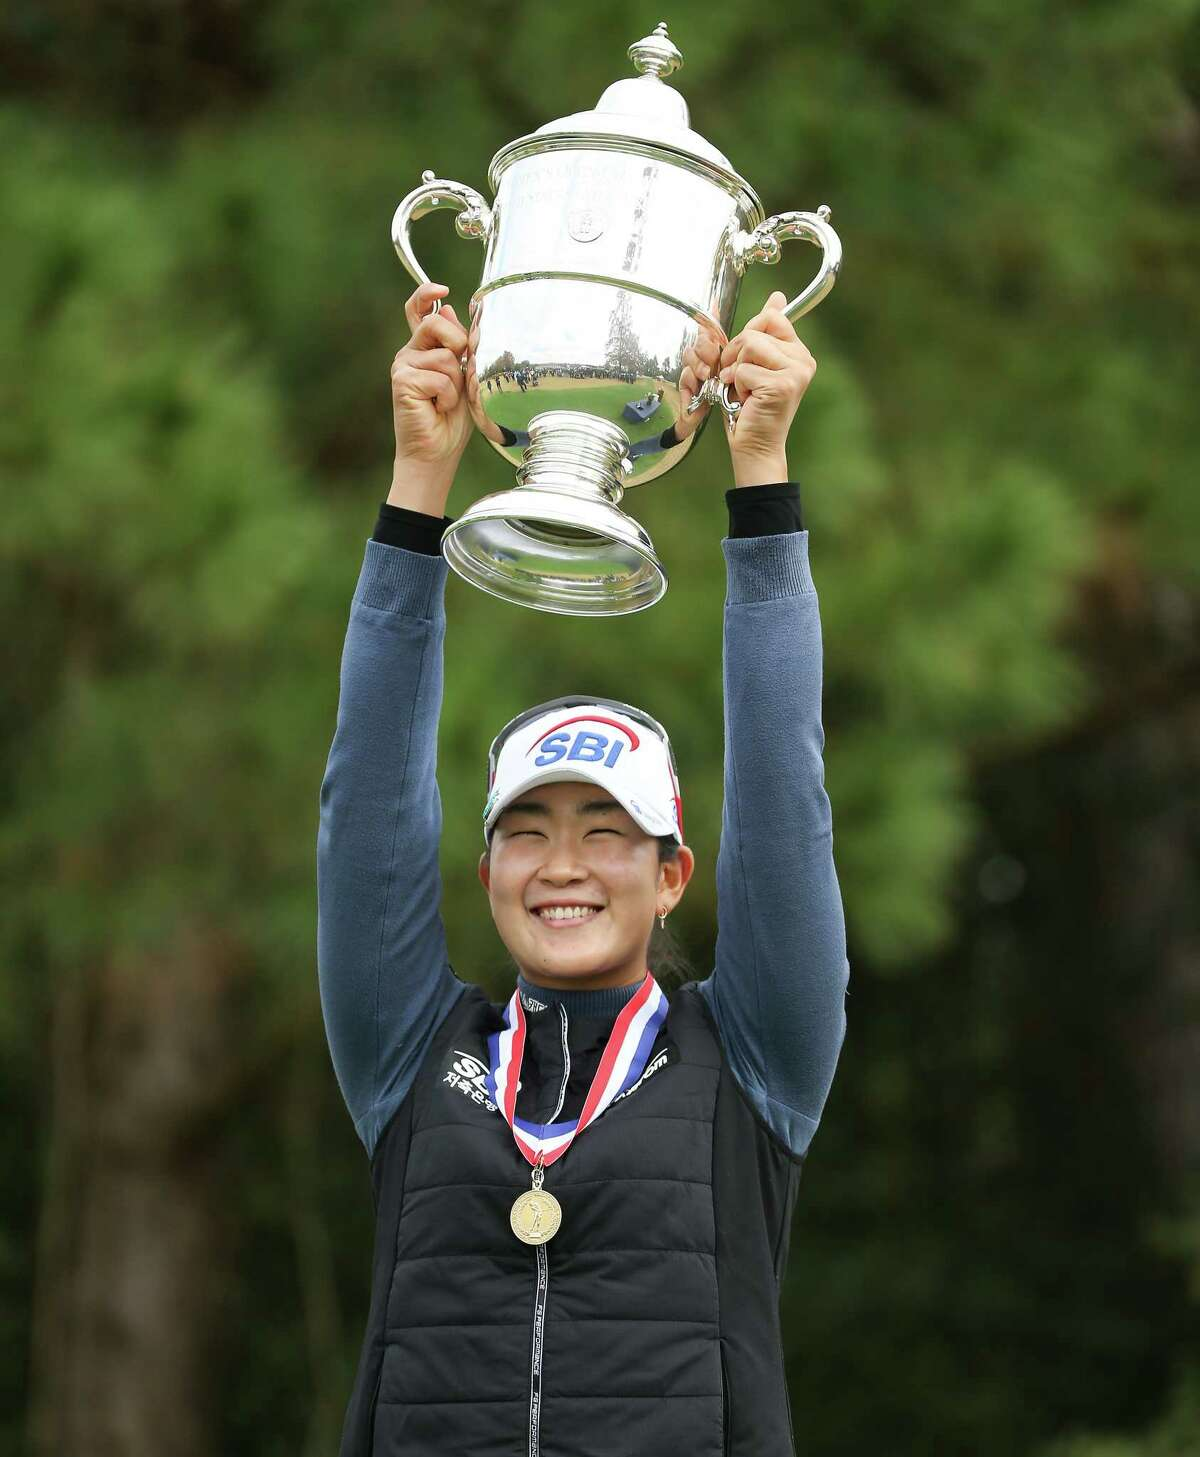 A Lim Kim of Korea holds up the Harton S. Semple trophy after winning the 75th Annual U.S. Women's Open at Champions Golf Club in Houston on Monday, Dec. 14, 2020.